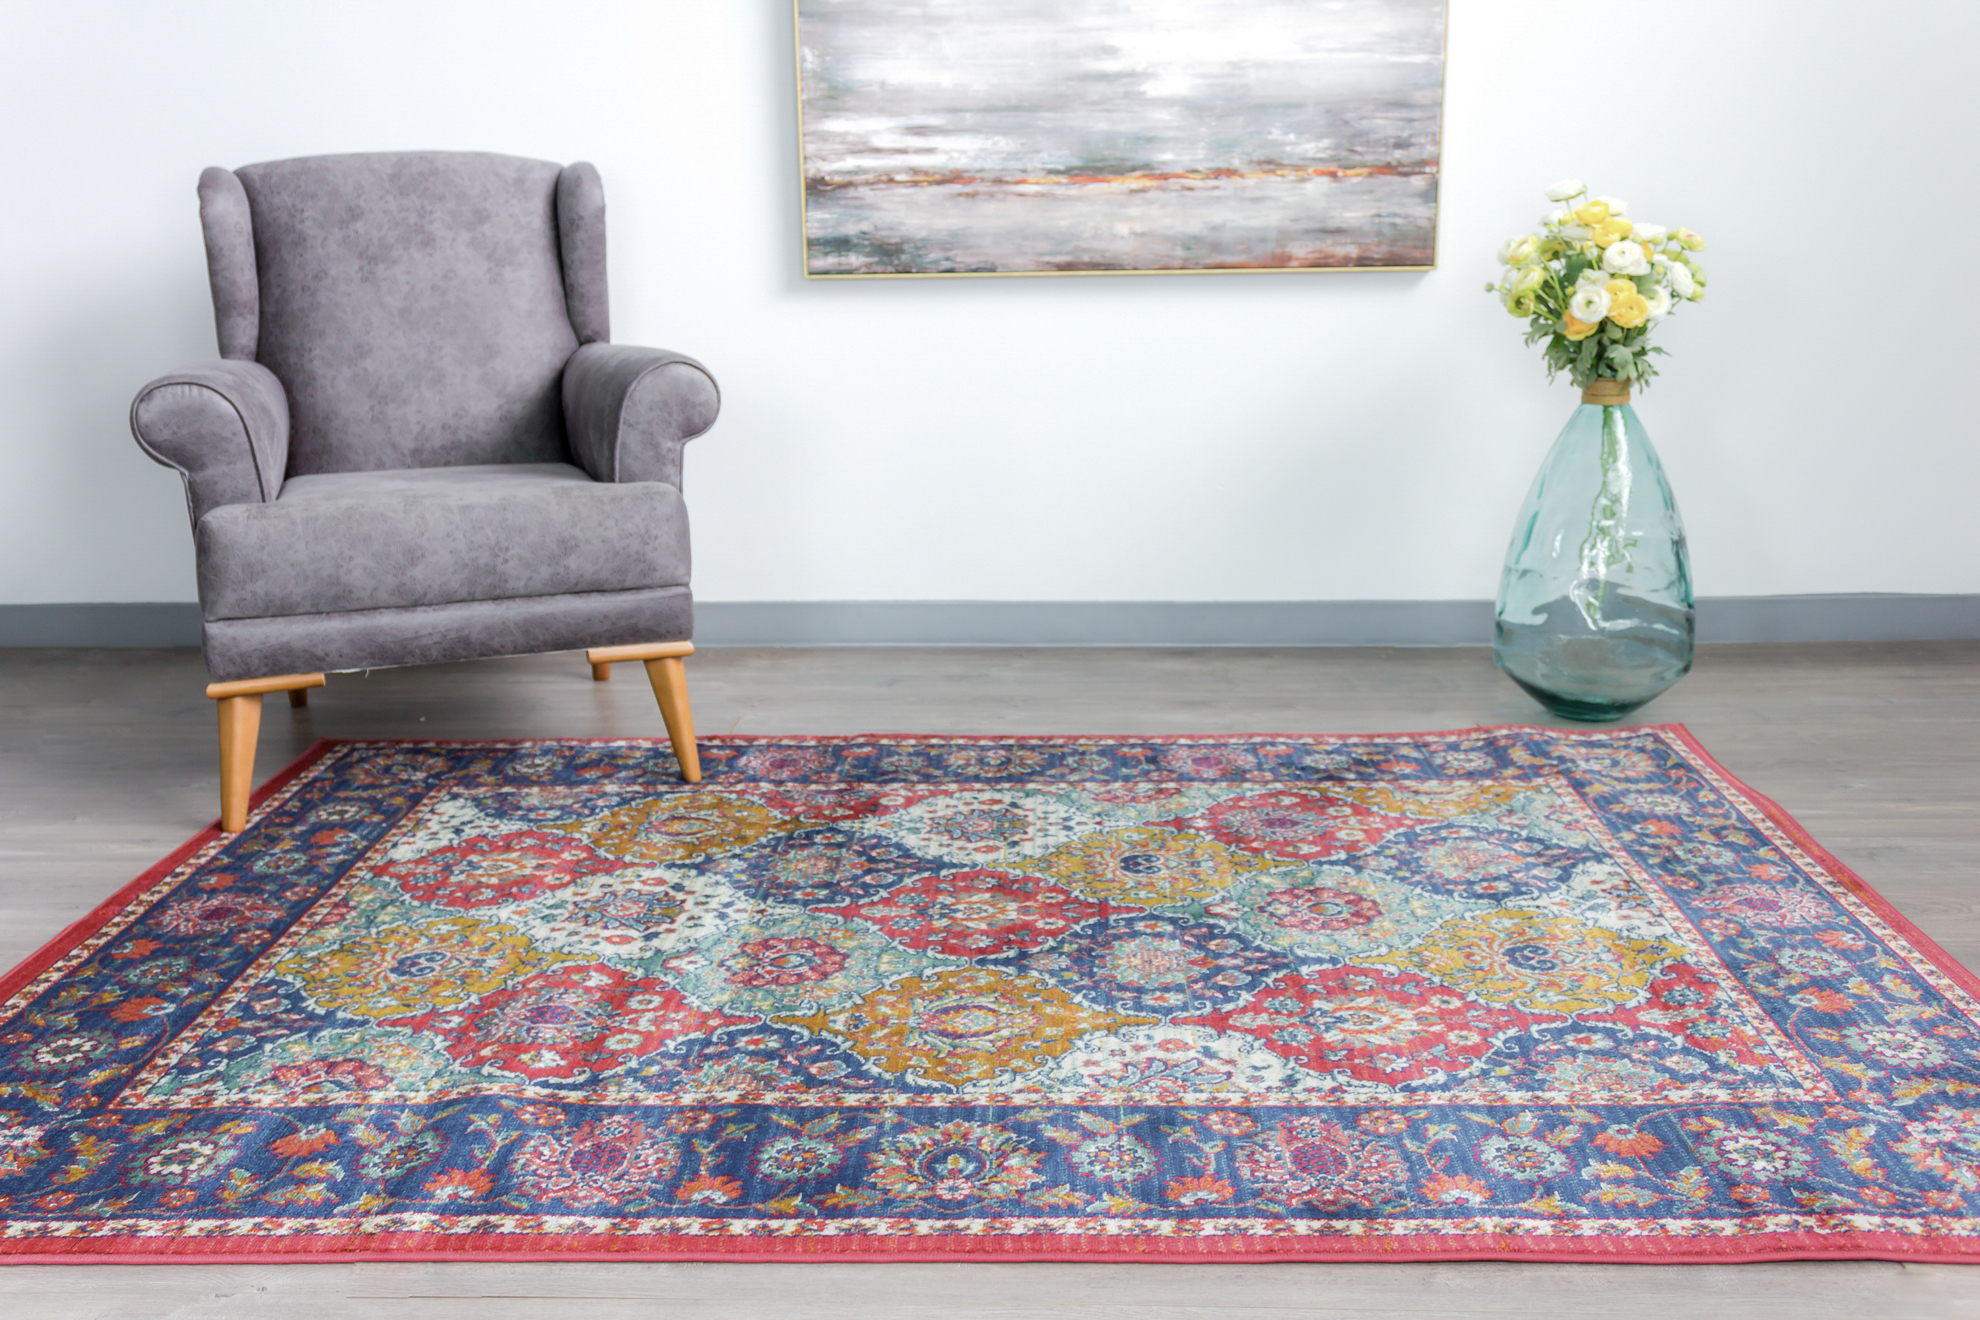 Picture of Leyla Dark Rose/Dark Blue Area Rug 8x10ft